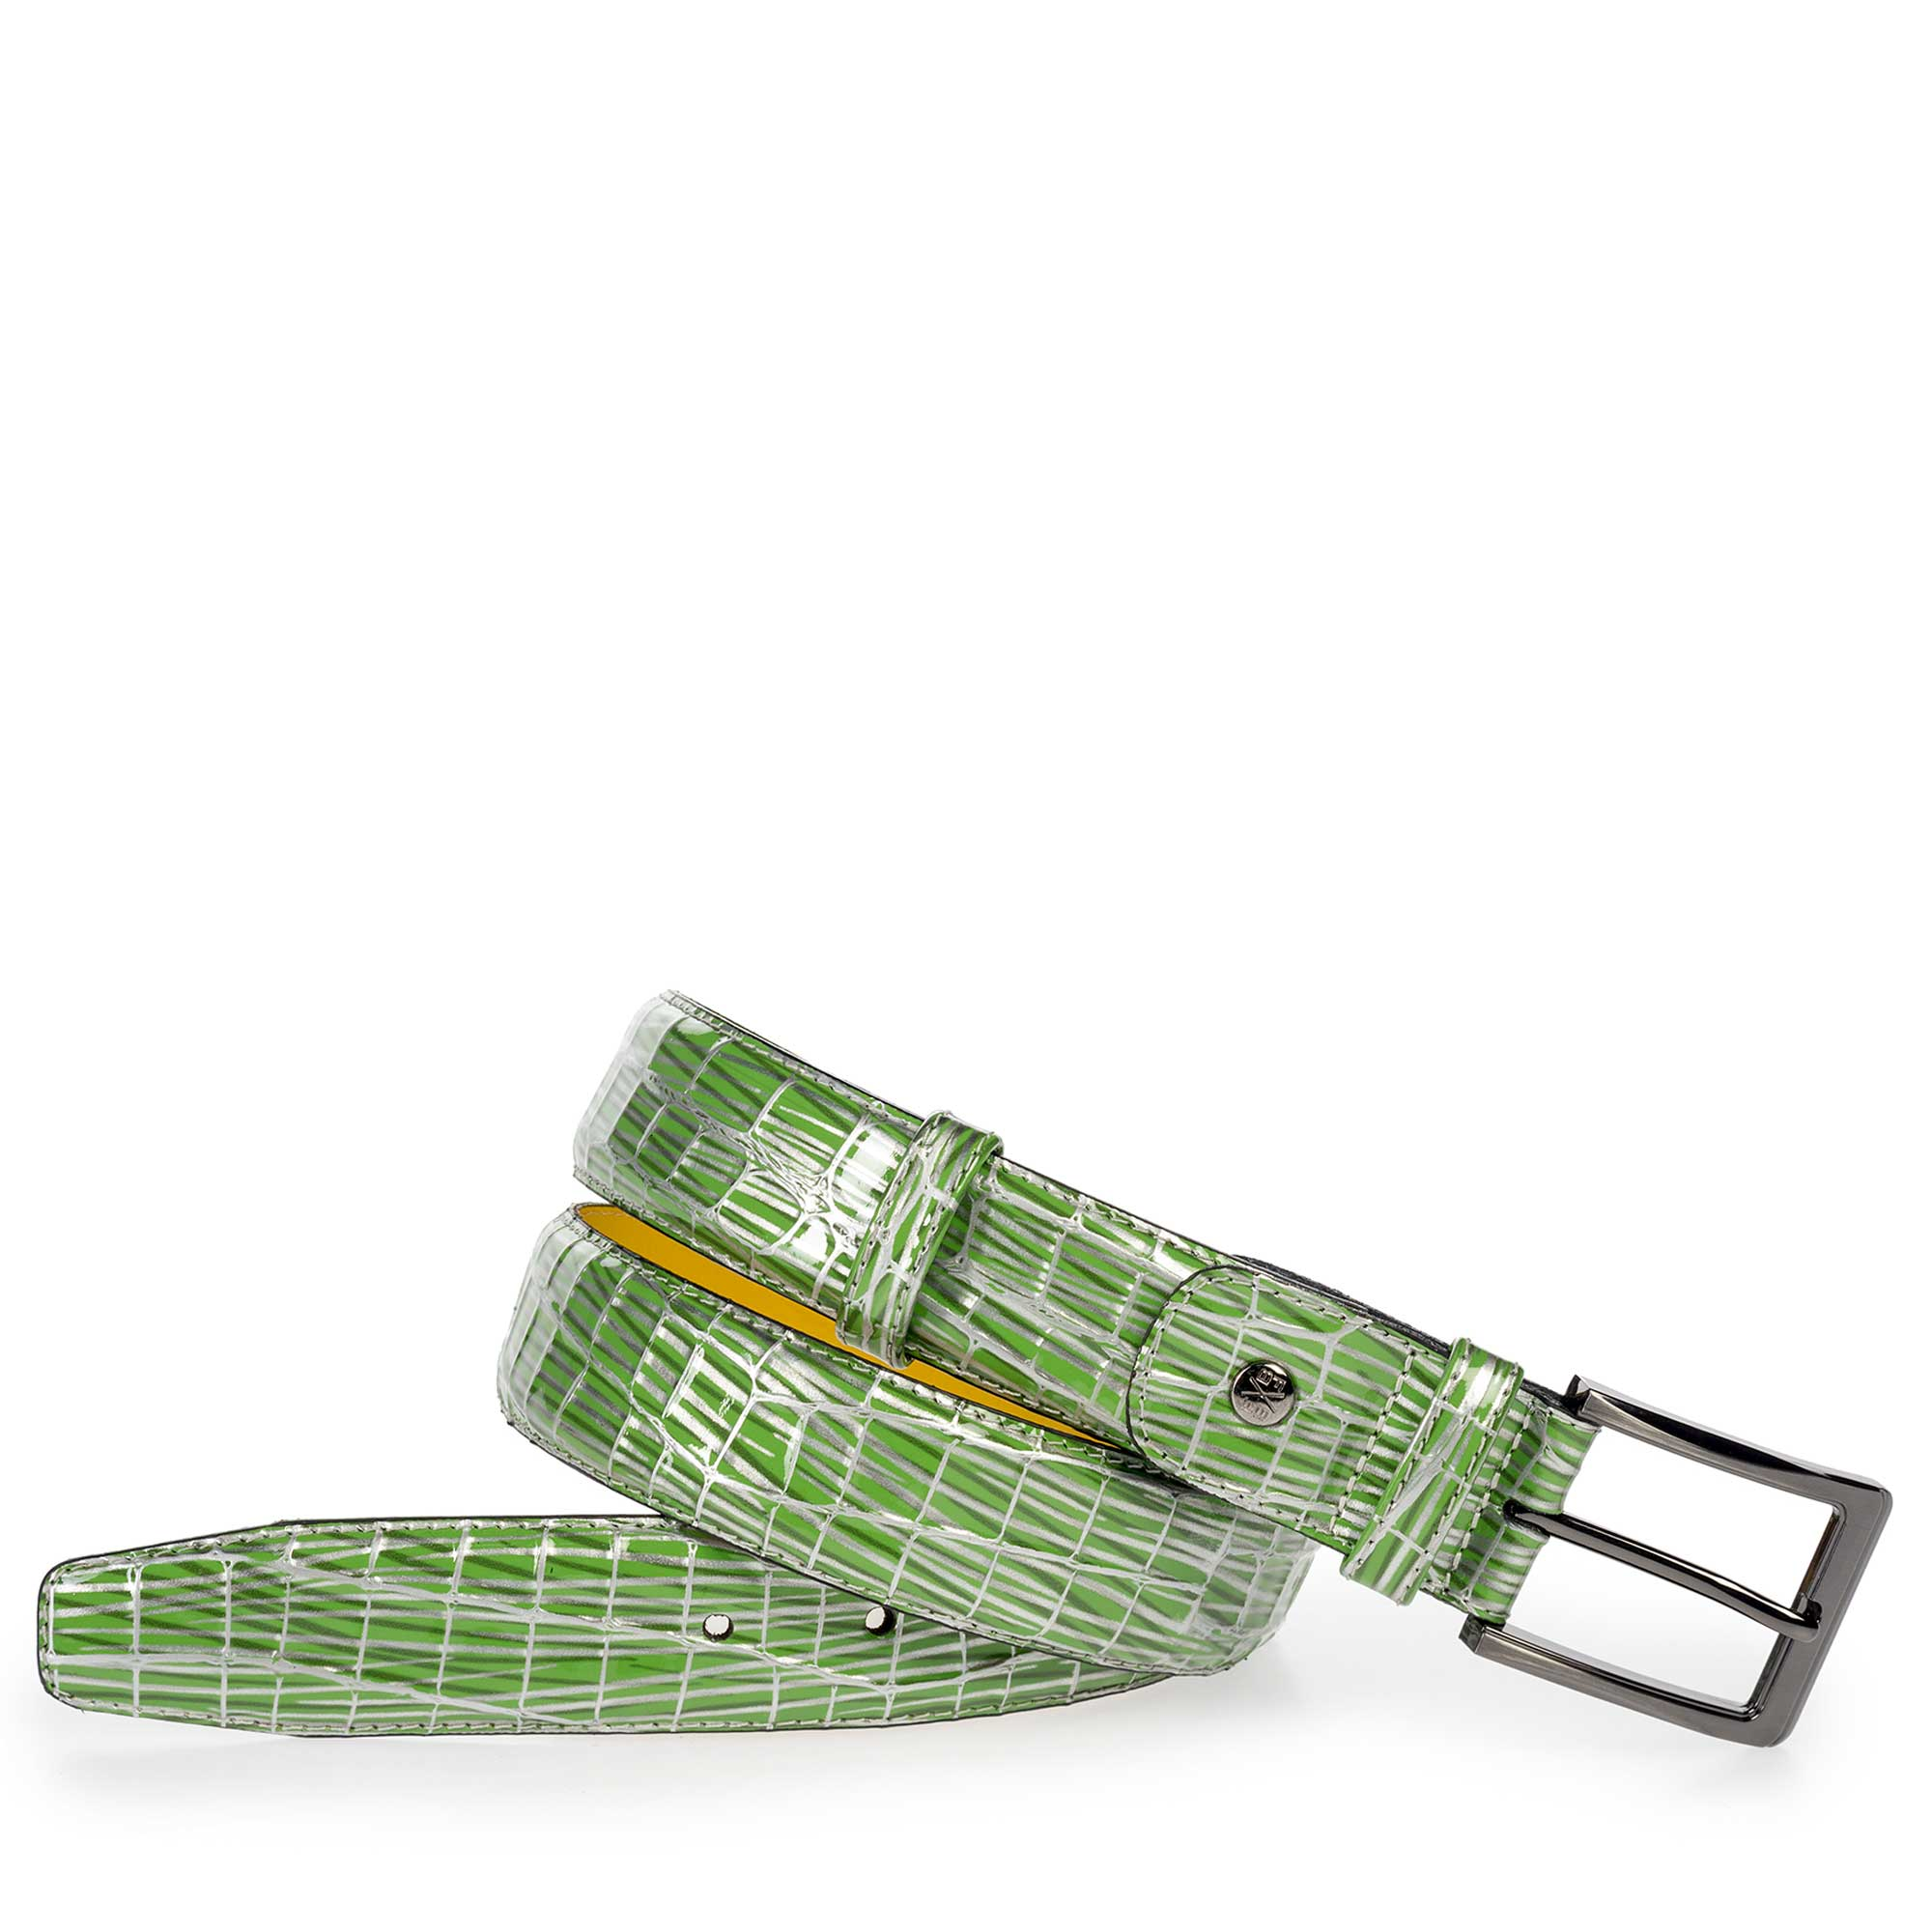 75182/04 - Green patent leather belt with print